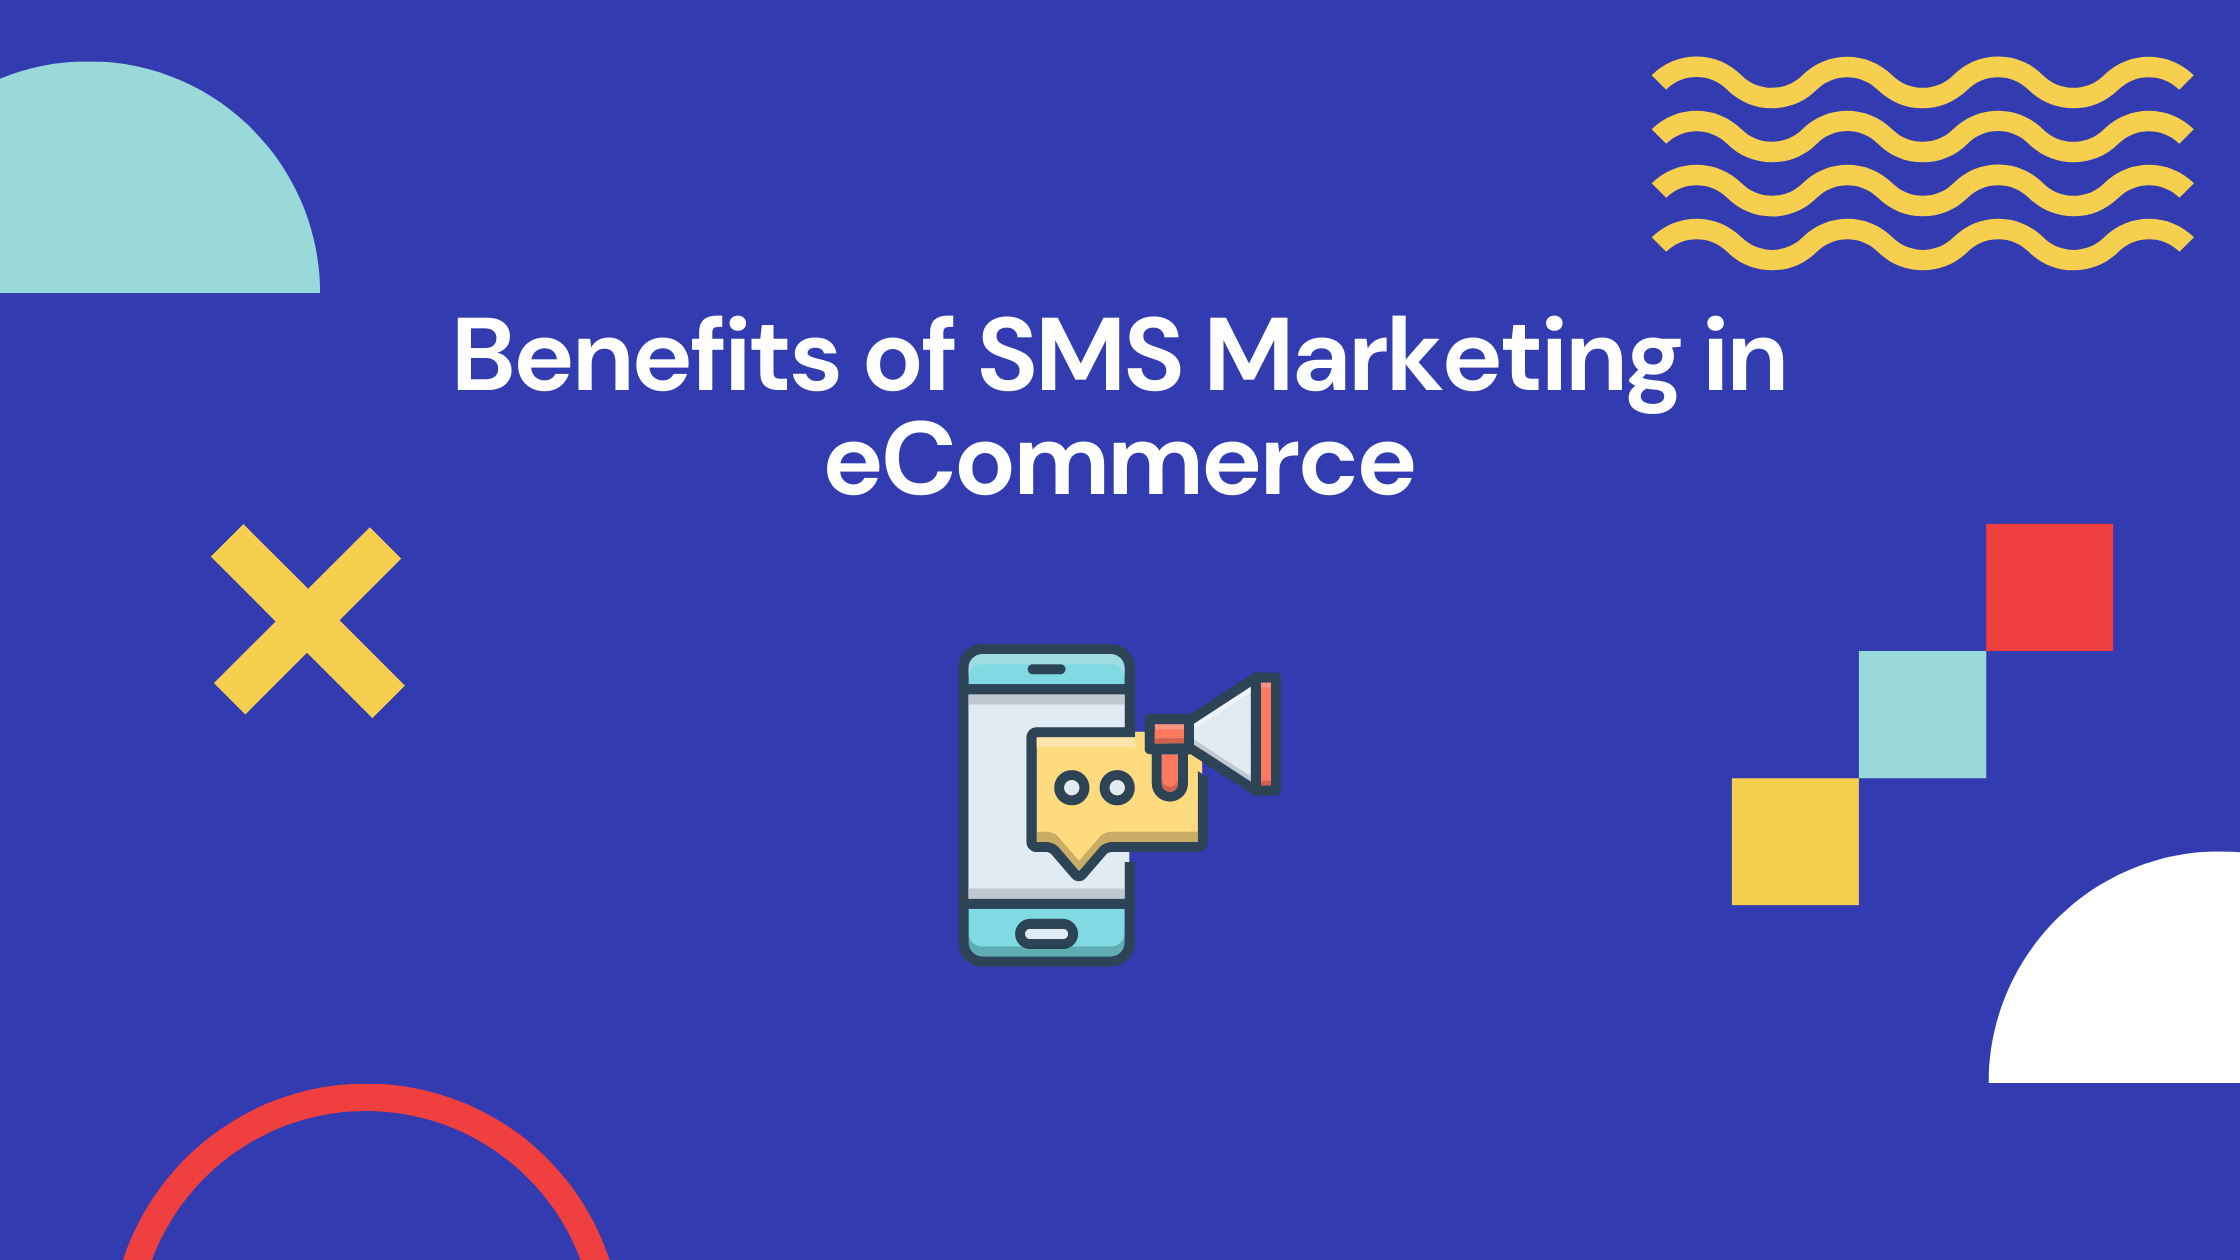 Benefits of SMS Marketing in eCommerce